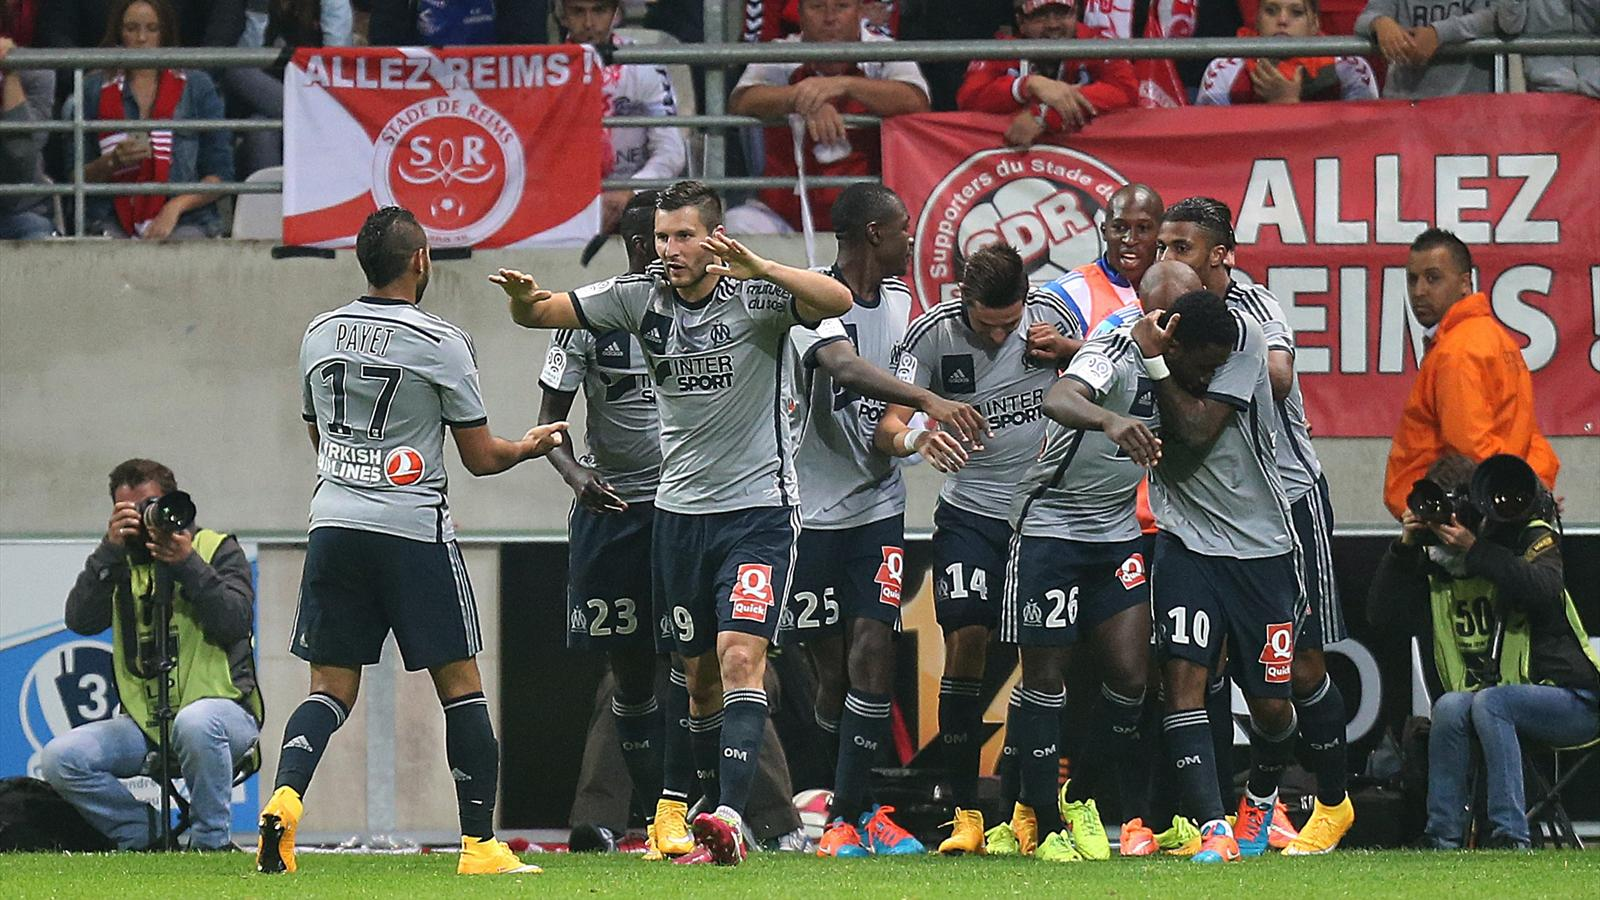 Video: Reims vs Olympique Marseille